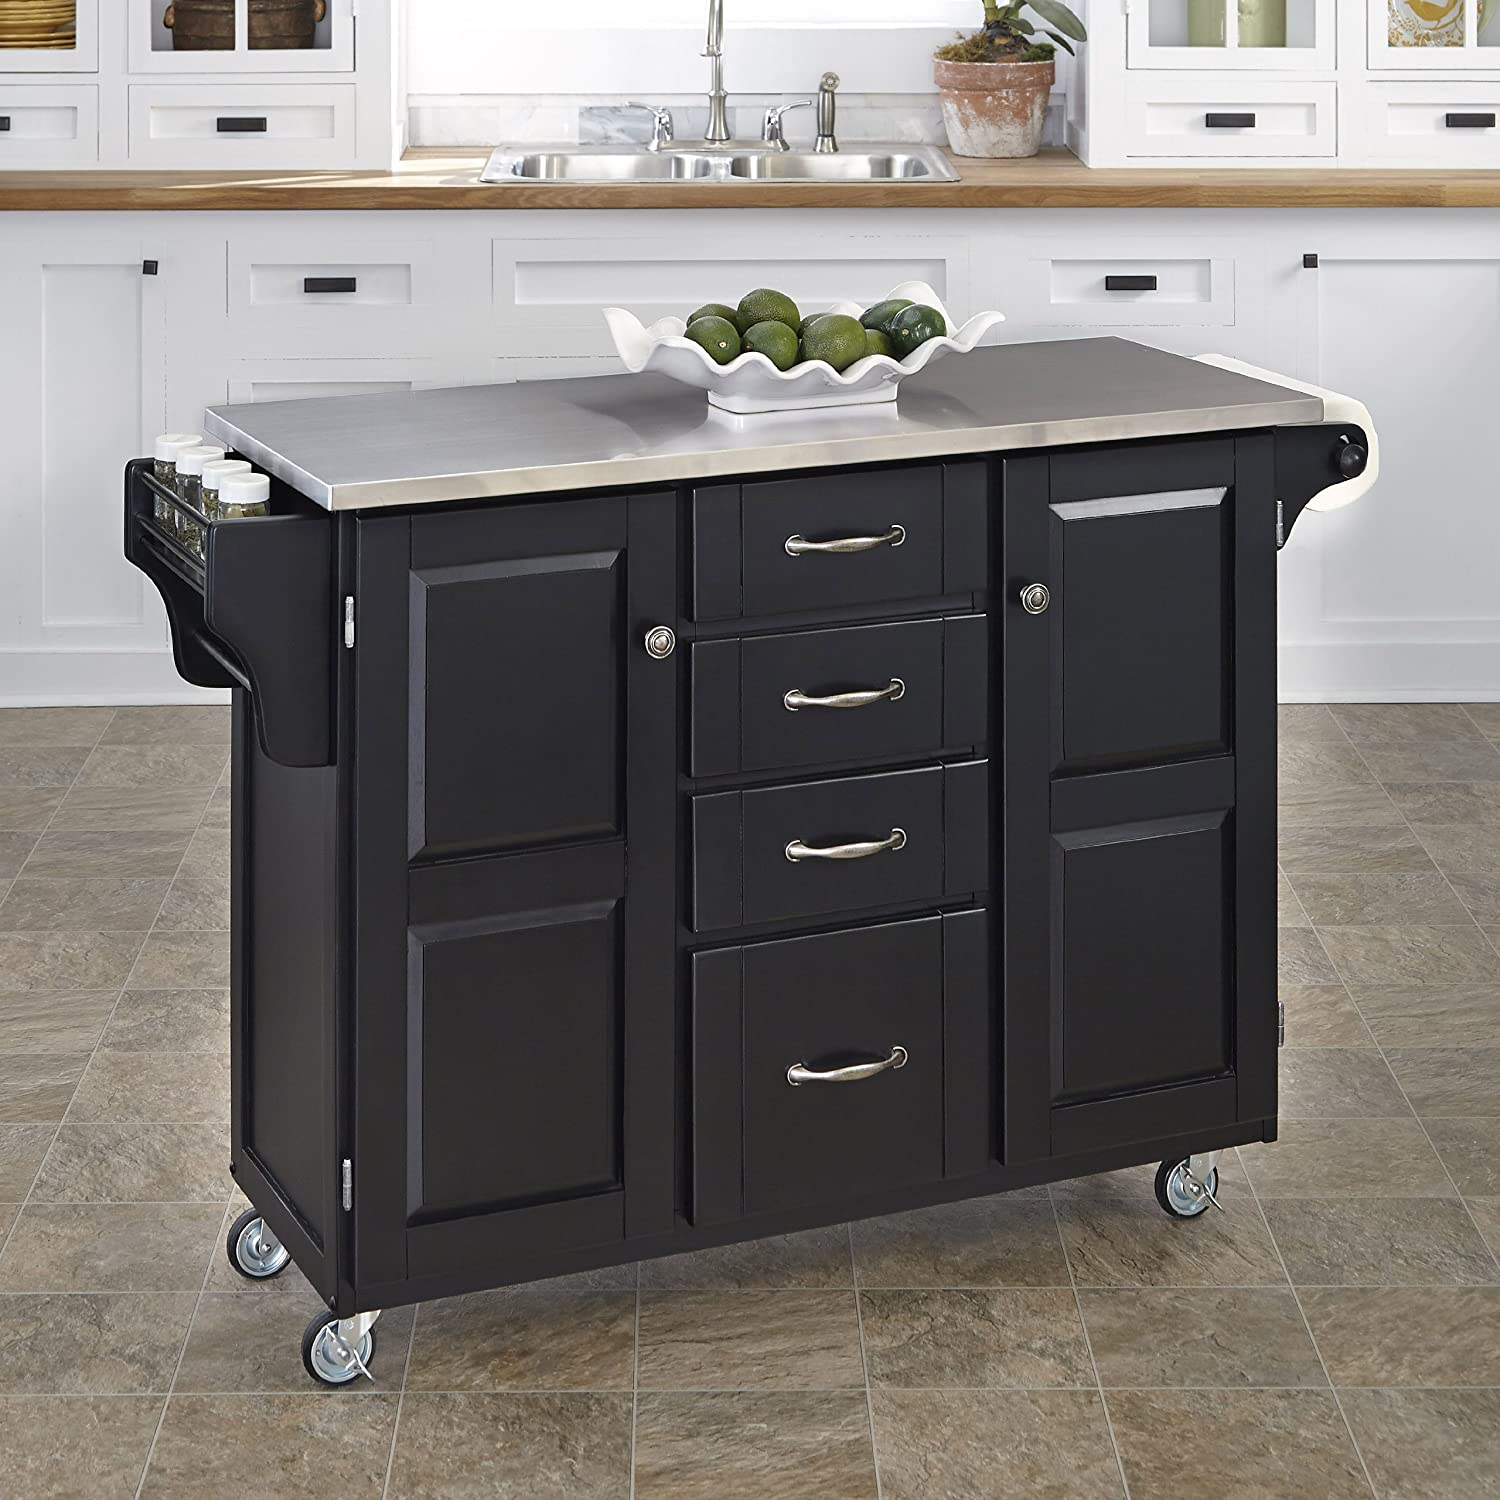 Amazon.com - Home Styles 9100-1042 Create-a-Cart 9100 Series ...